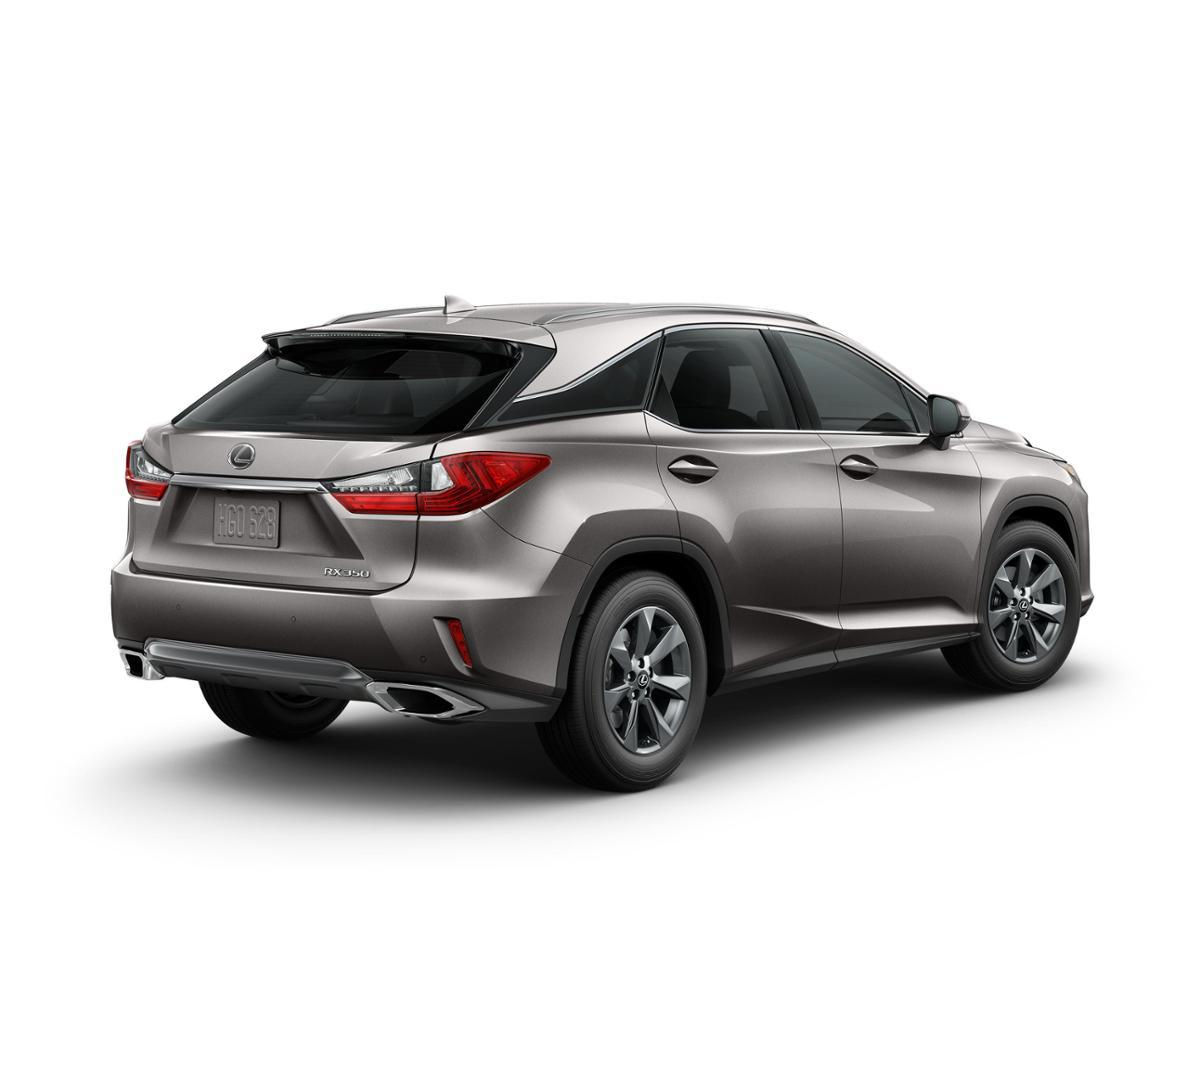 Lexus Rx 350 Lease: Towson Atomic Silver 2019 Lexus RX 350: New Suv For Sale